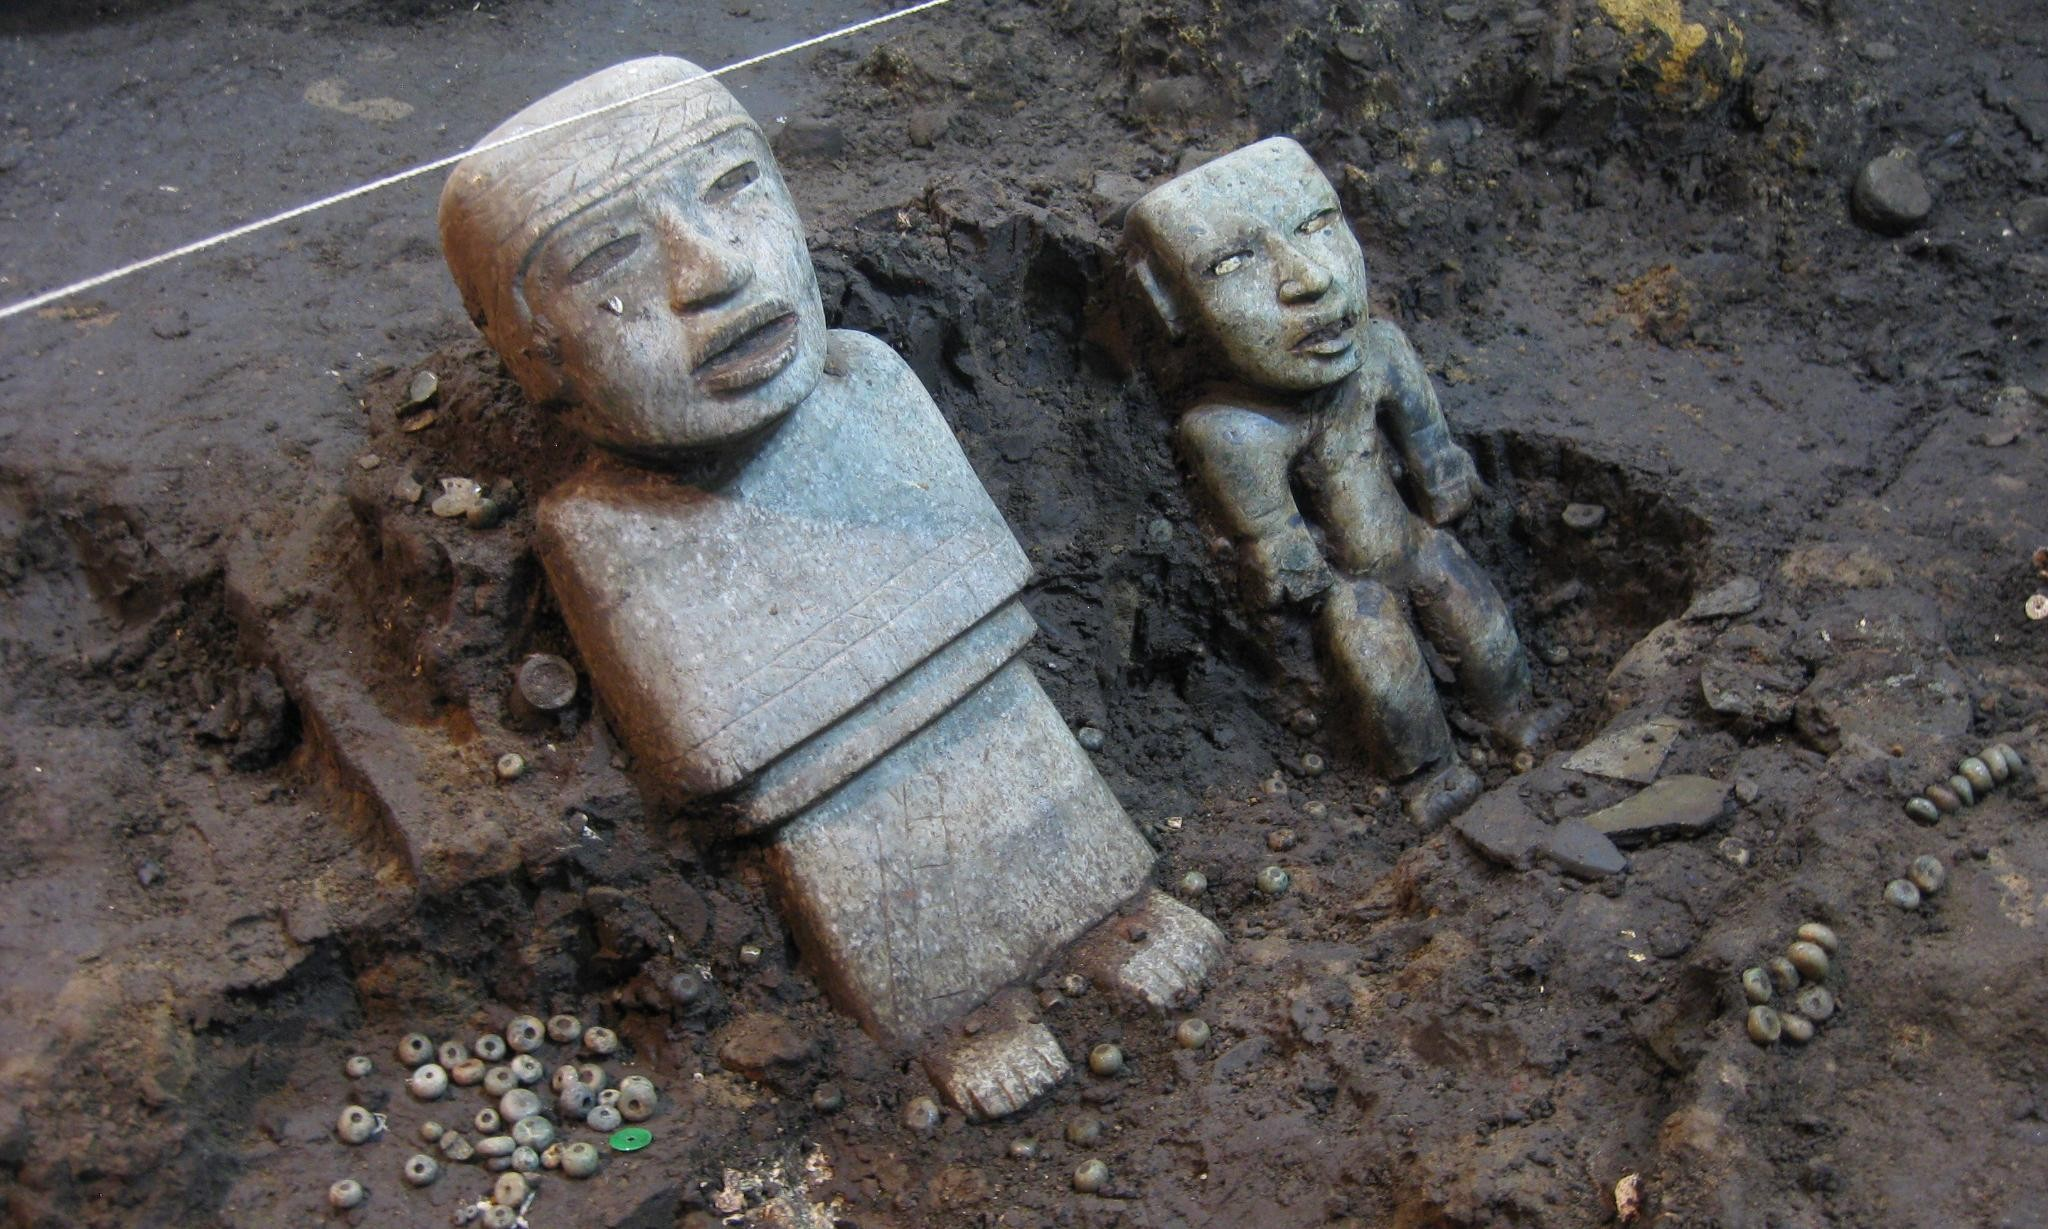 Mexico's ancient city guards its secrets but excavation reveals new mysteries